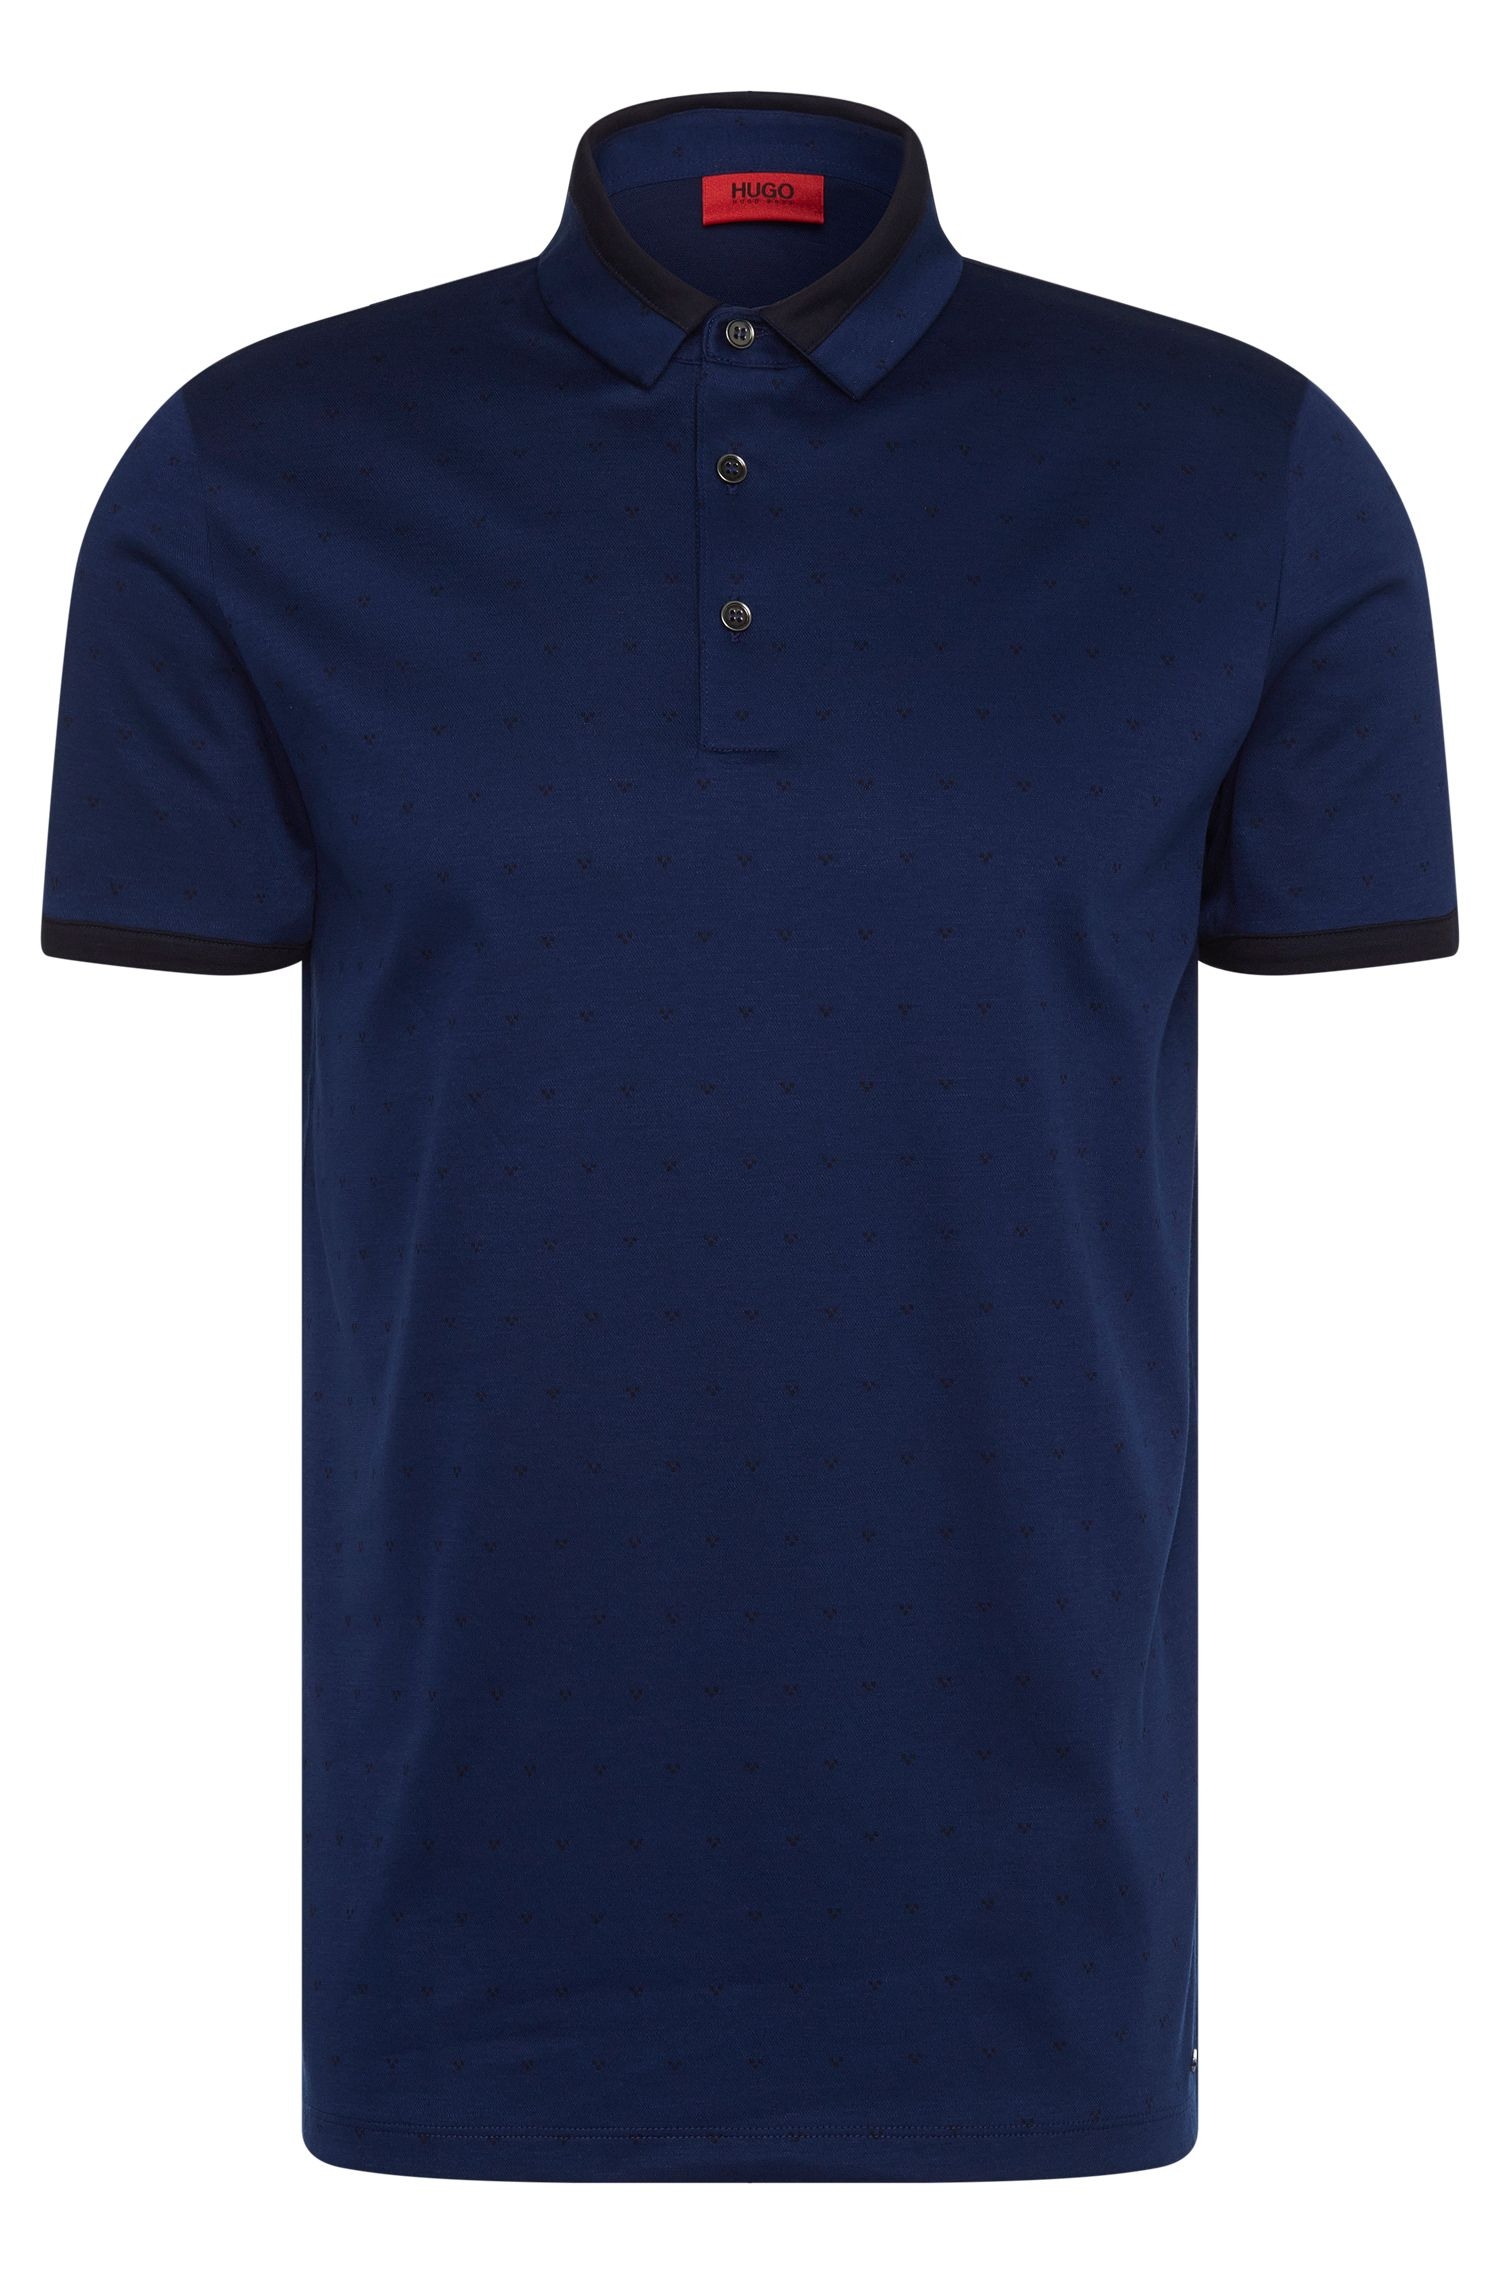 Cotton Jacquard Polo Shirt, Slim Fit | Denno